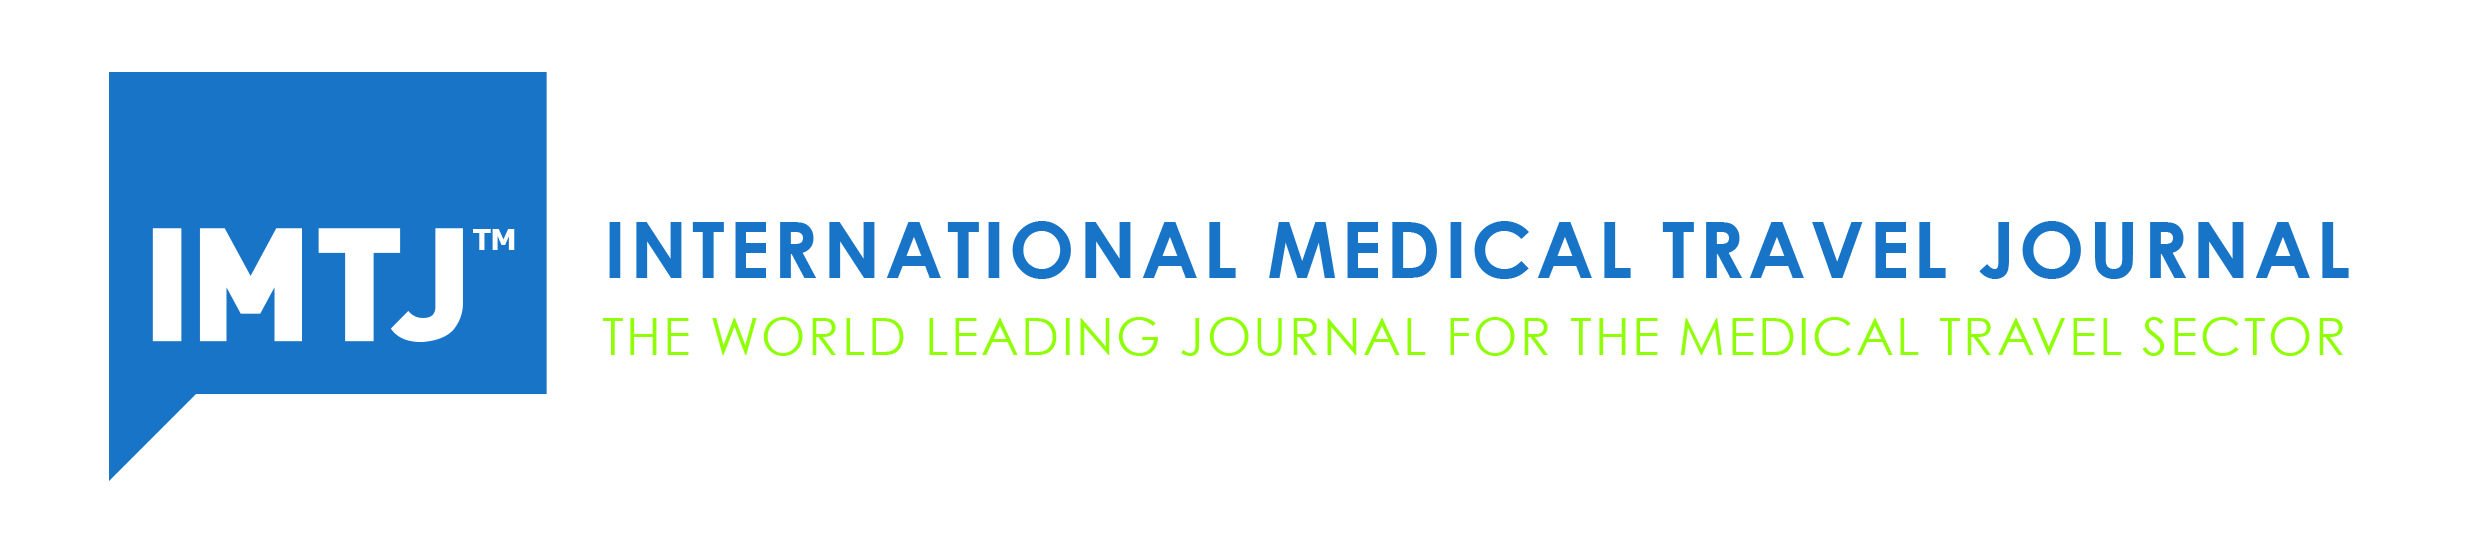 imtj medical travel climate survey 2019